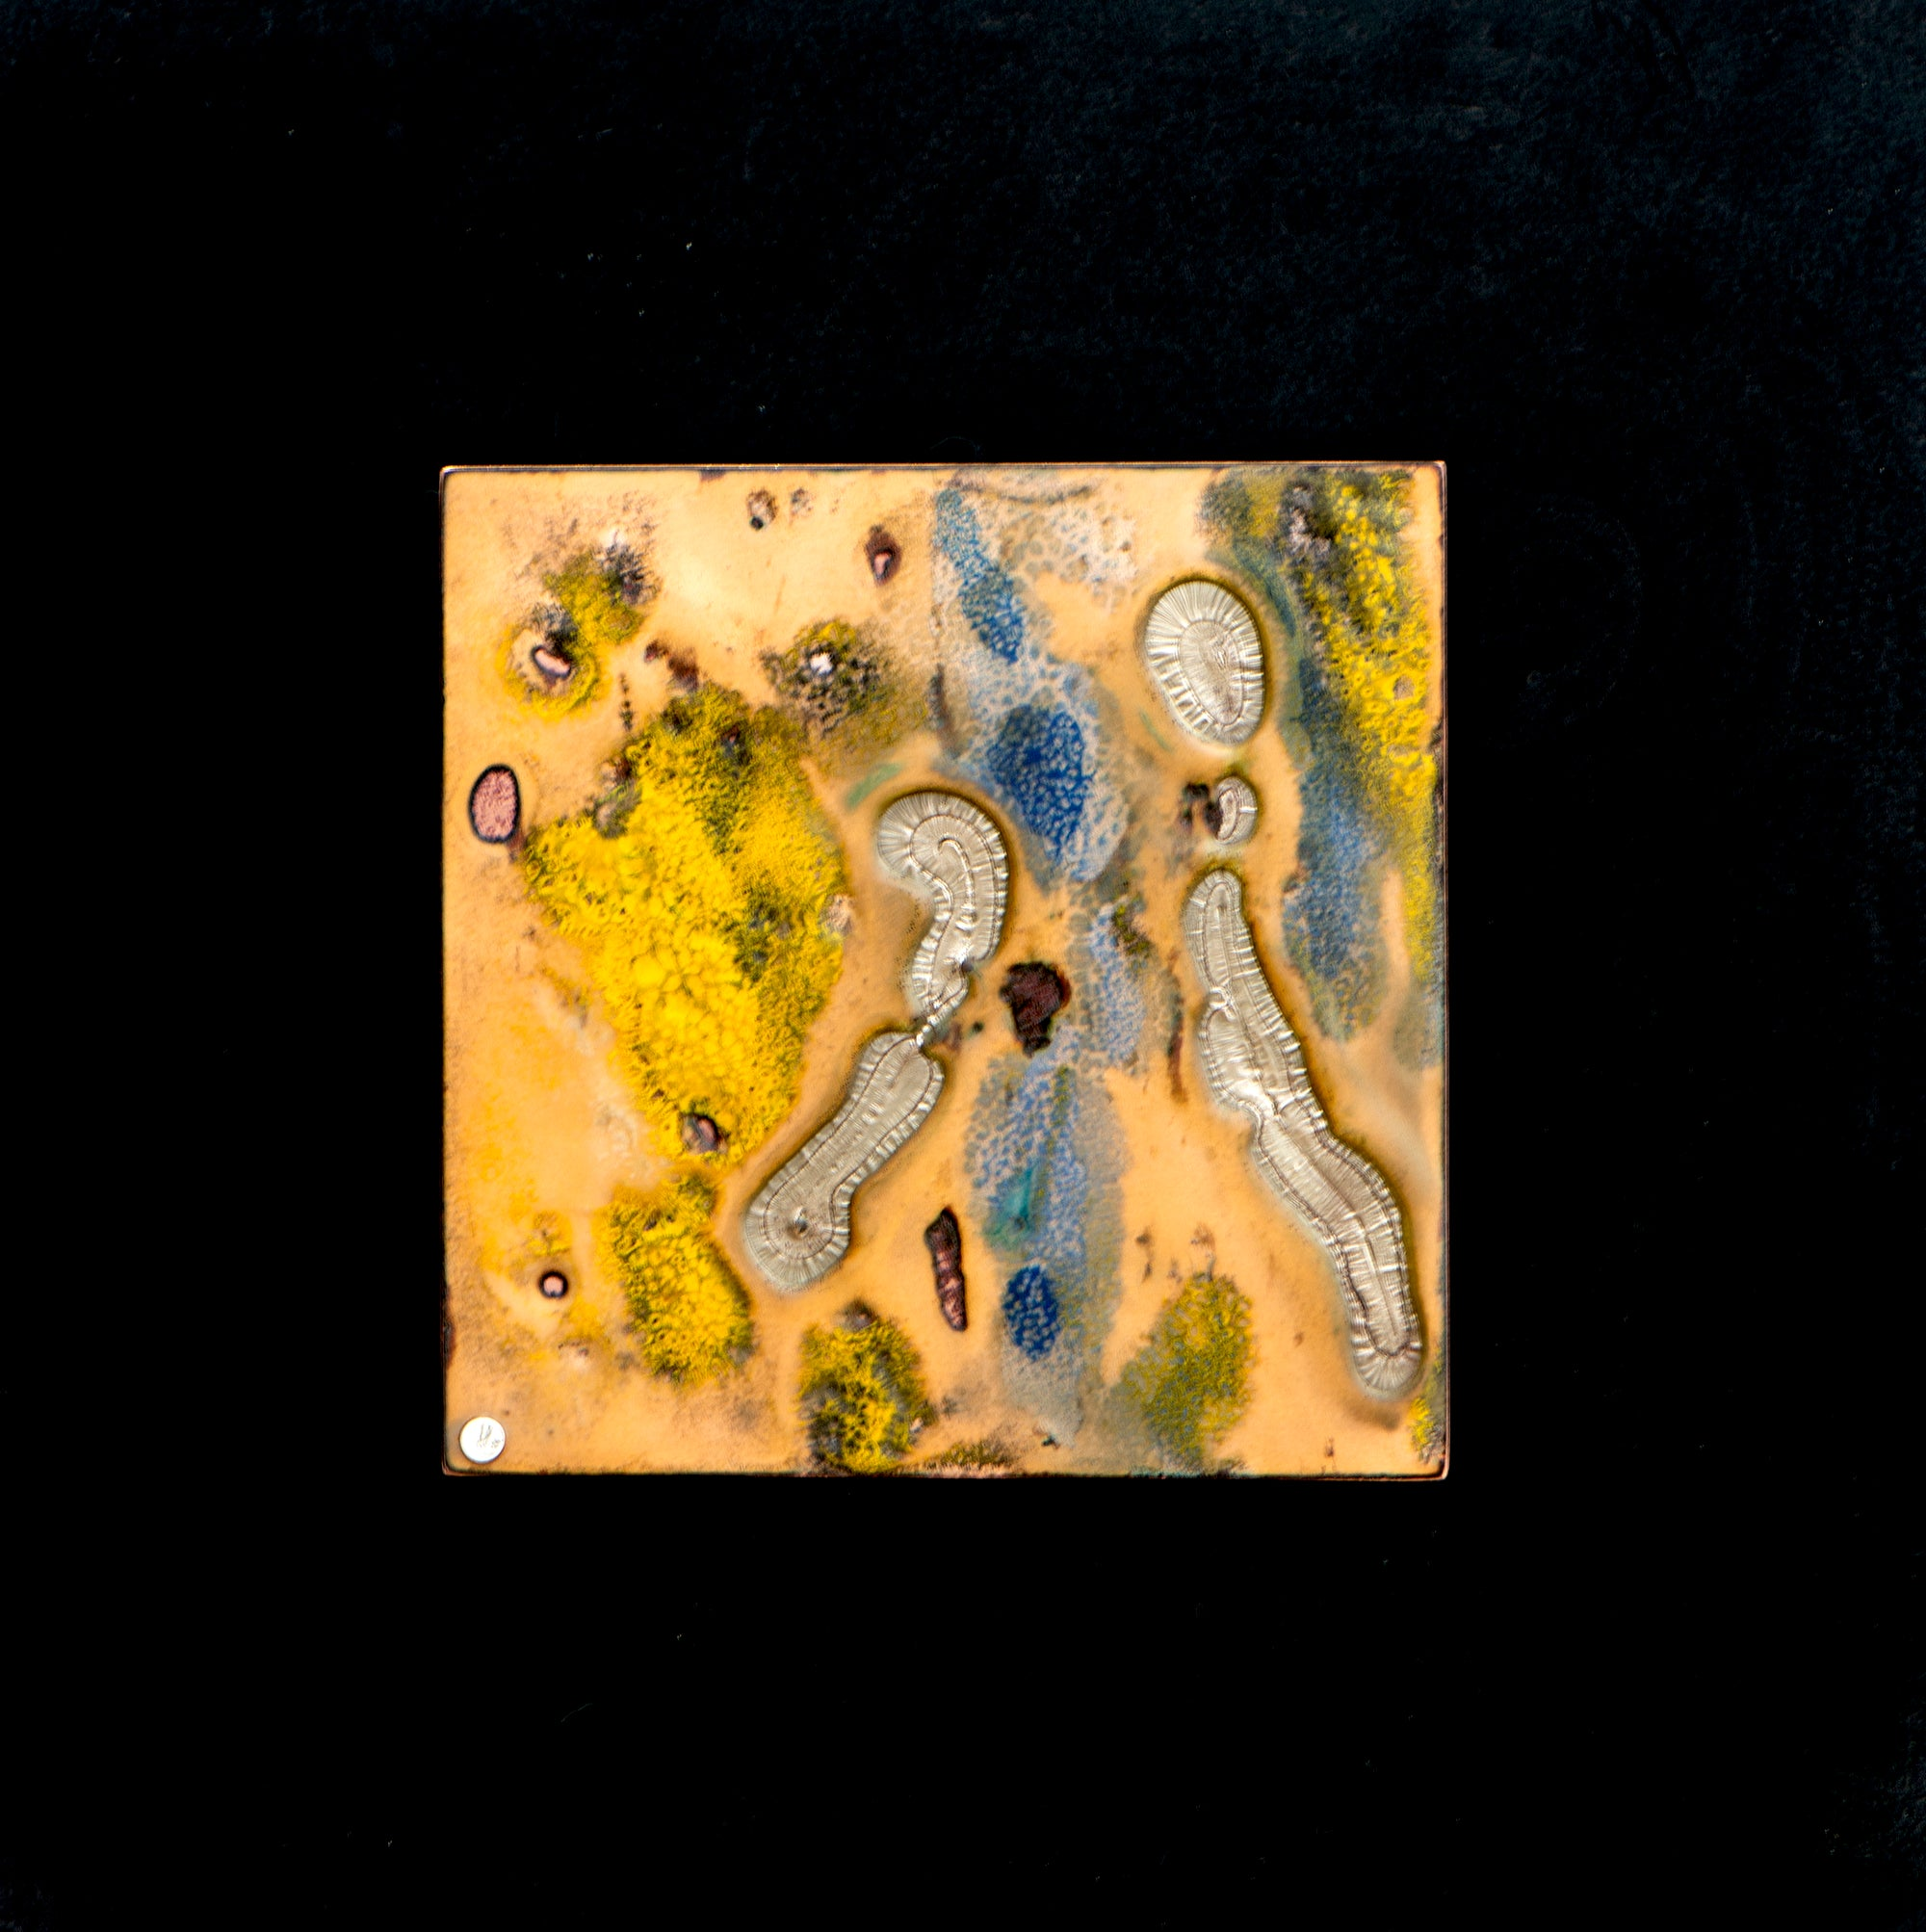 Conversations,  Enamel on copper panel with eutectic fired fine silver